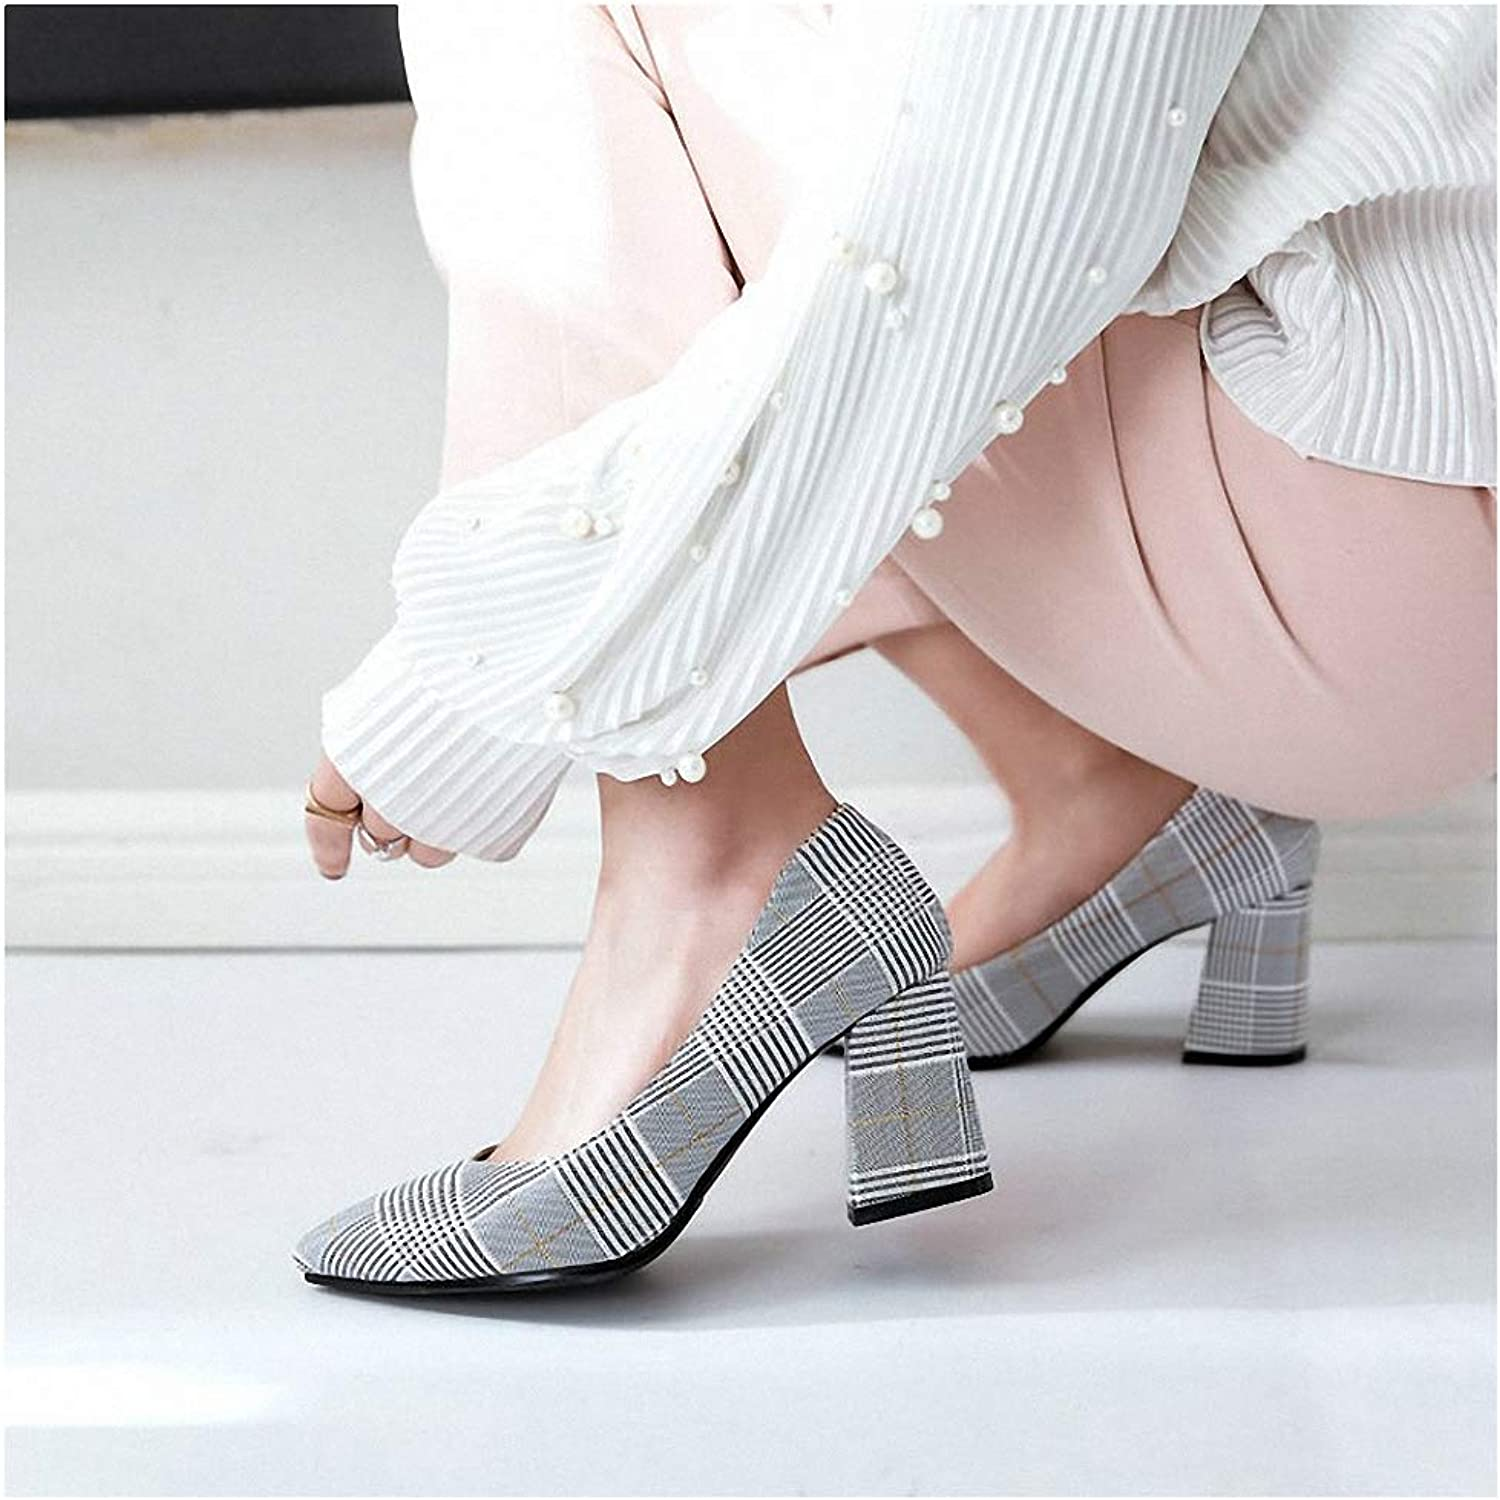 Tebapi Womens High-Heeled Pumps shoes Checked Plaid Pointed Toe Office Career Woman Pumps Stiletto Dress shoes High Heels shoes Ladies